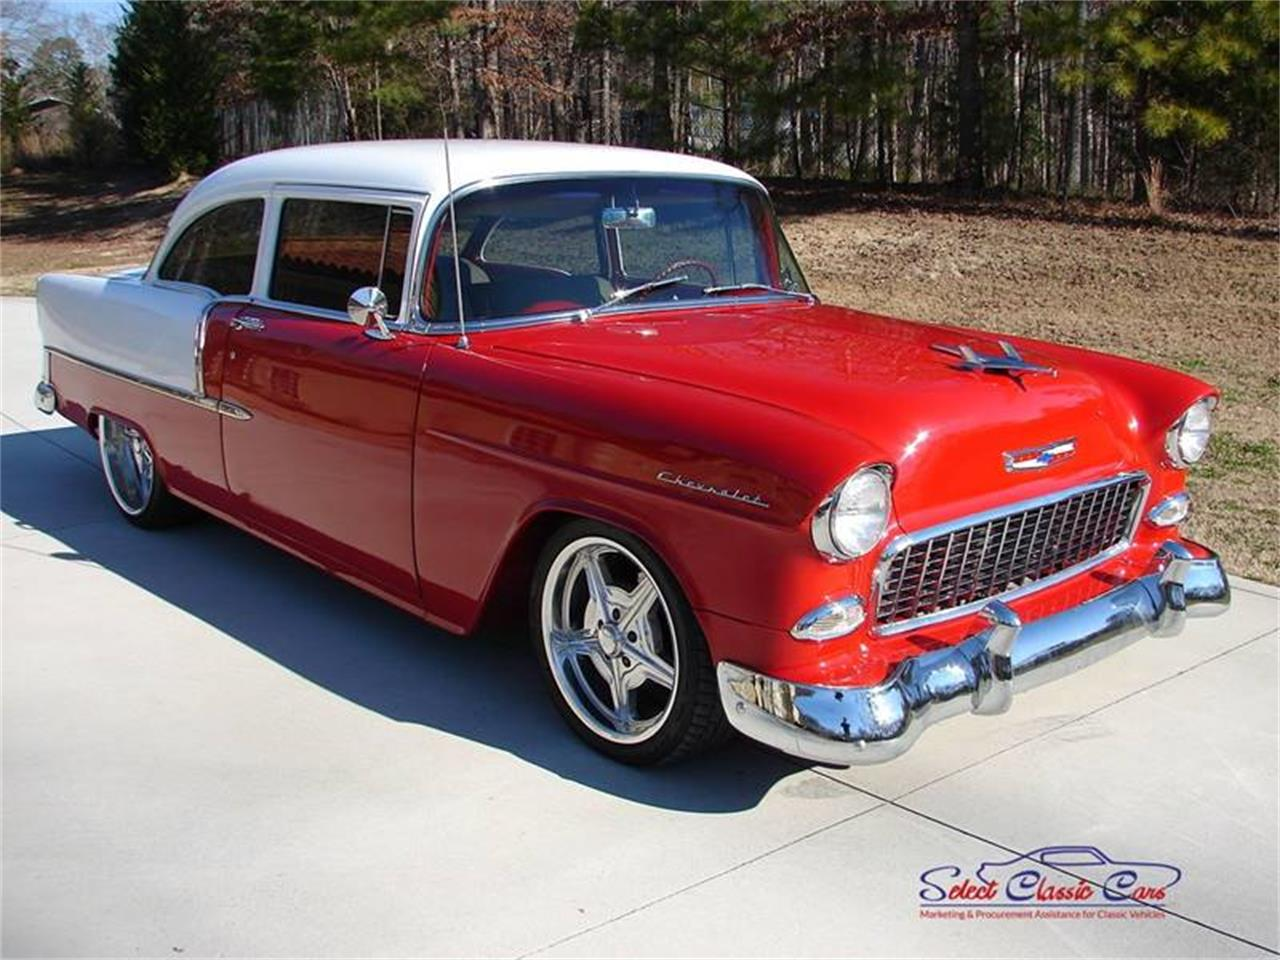 Large Picture of 1955 Chevrolet Bel Air located in Georgia - $46,500.00 Offered by Select Classic Cars - PEYX